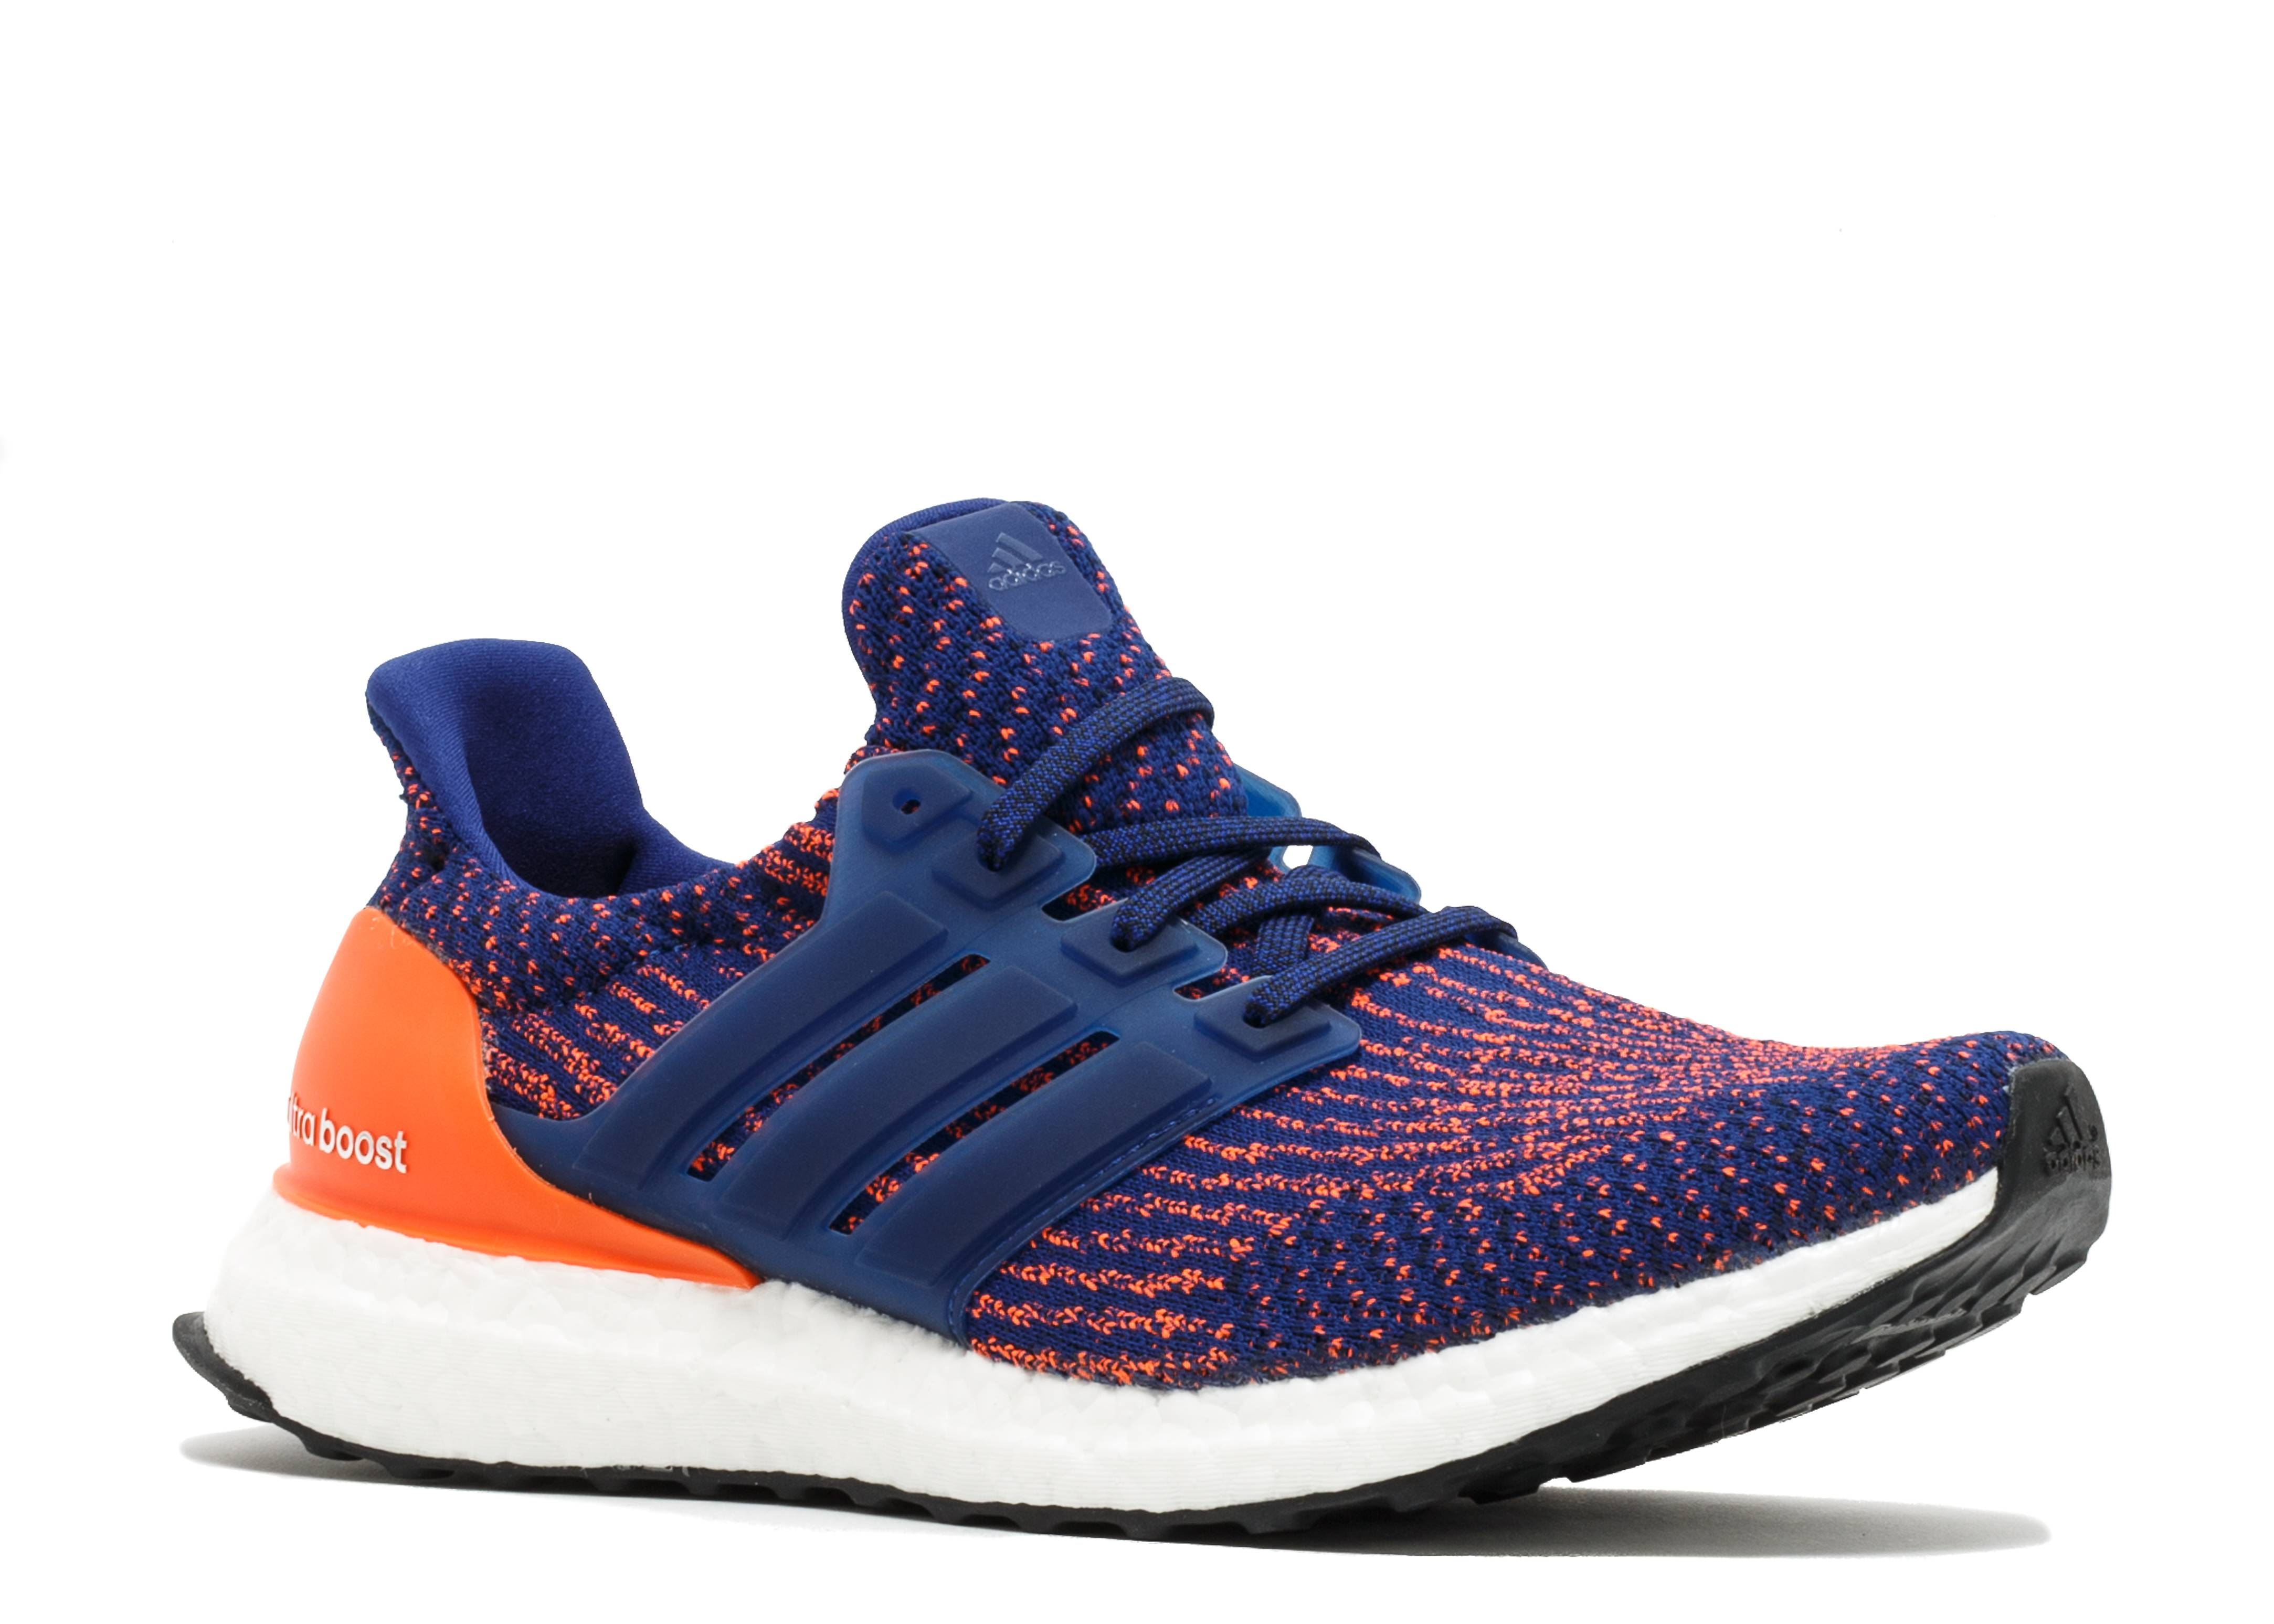 f8c8314be27 Adidas Ultra Boost 3.0 Mystery Ink - 1